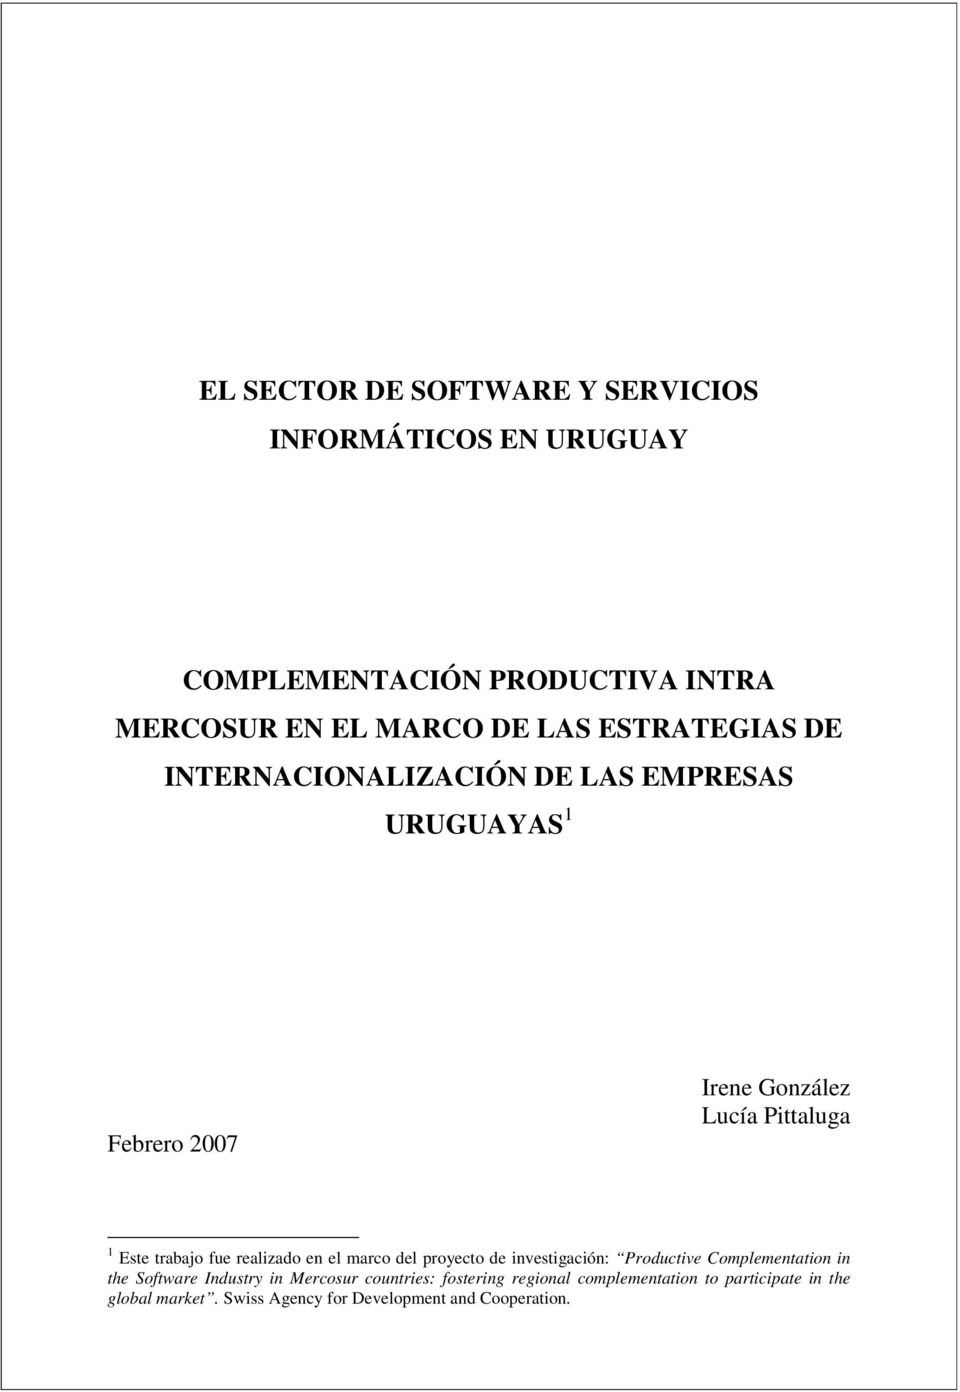 fue realizado en el marco del proyecto de investigación: Productive Complementation in the Software Industry in Mercosur